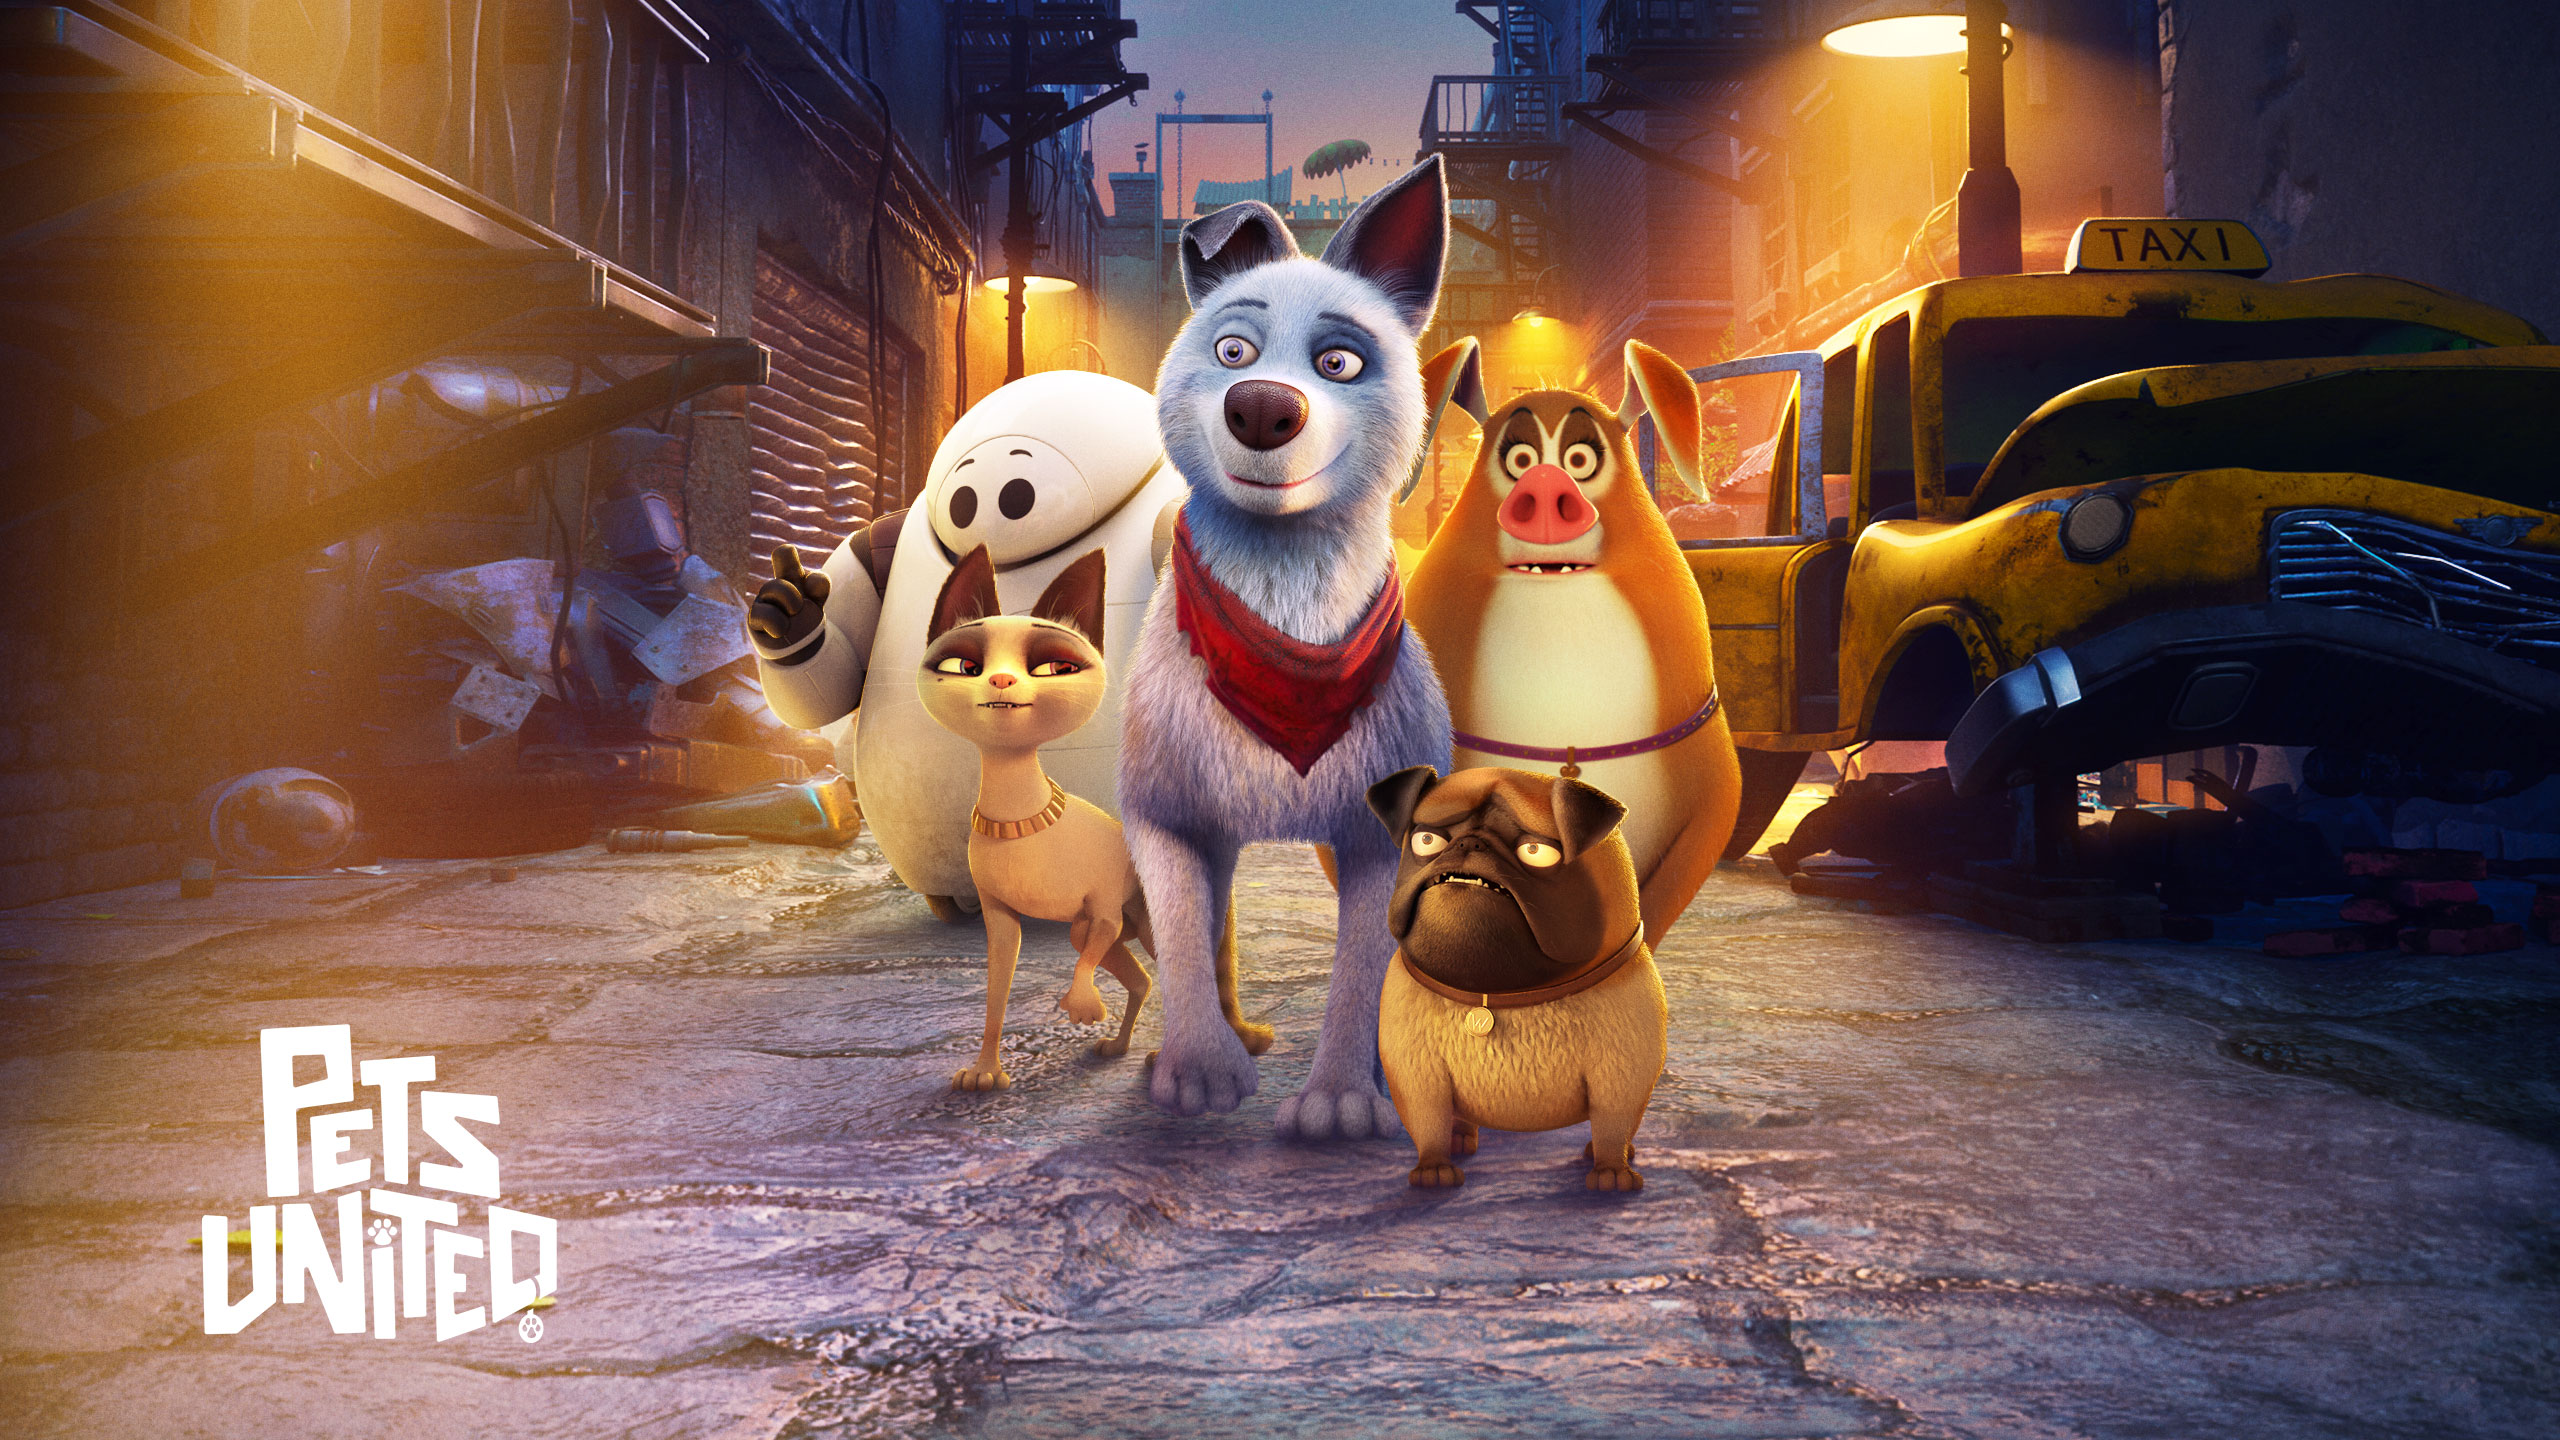 Pets United | Netflix Short Panel Concept, Finishing & Illustration